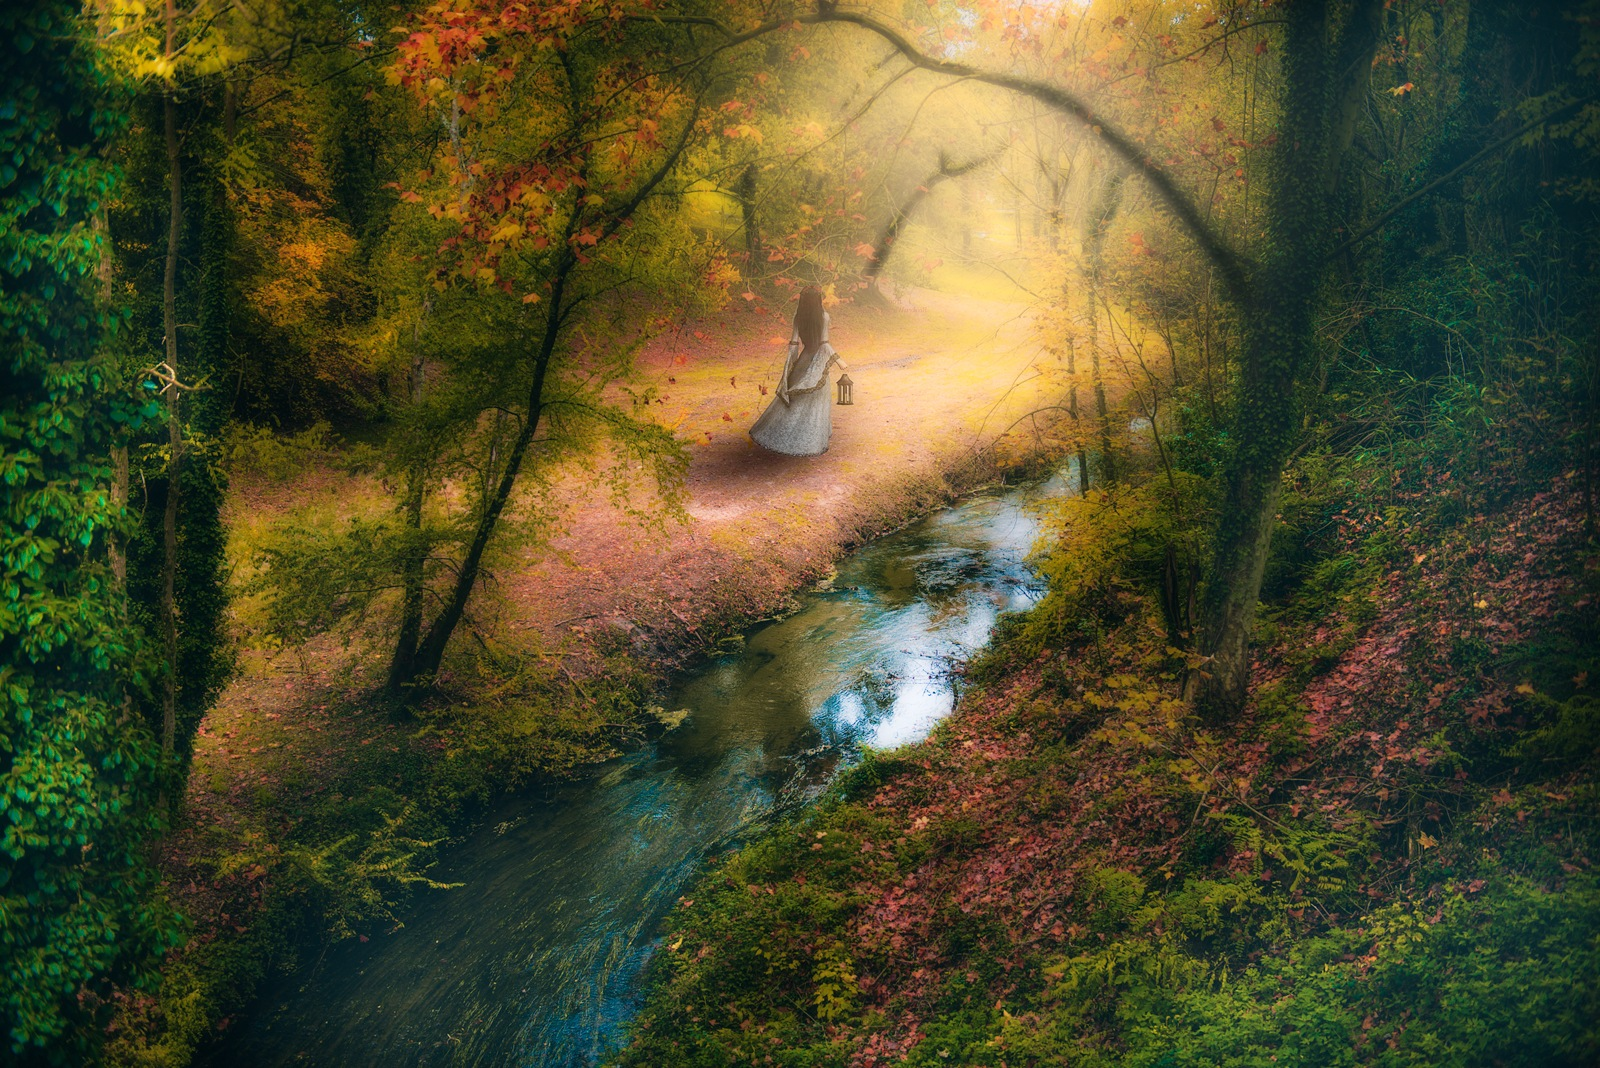 The girl in the forest by Rosana